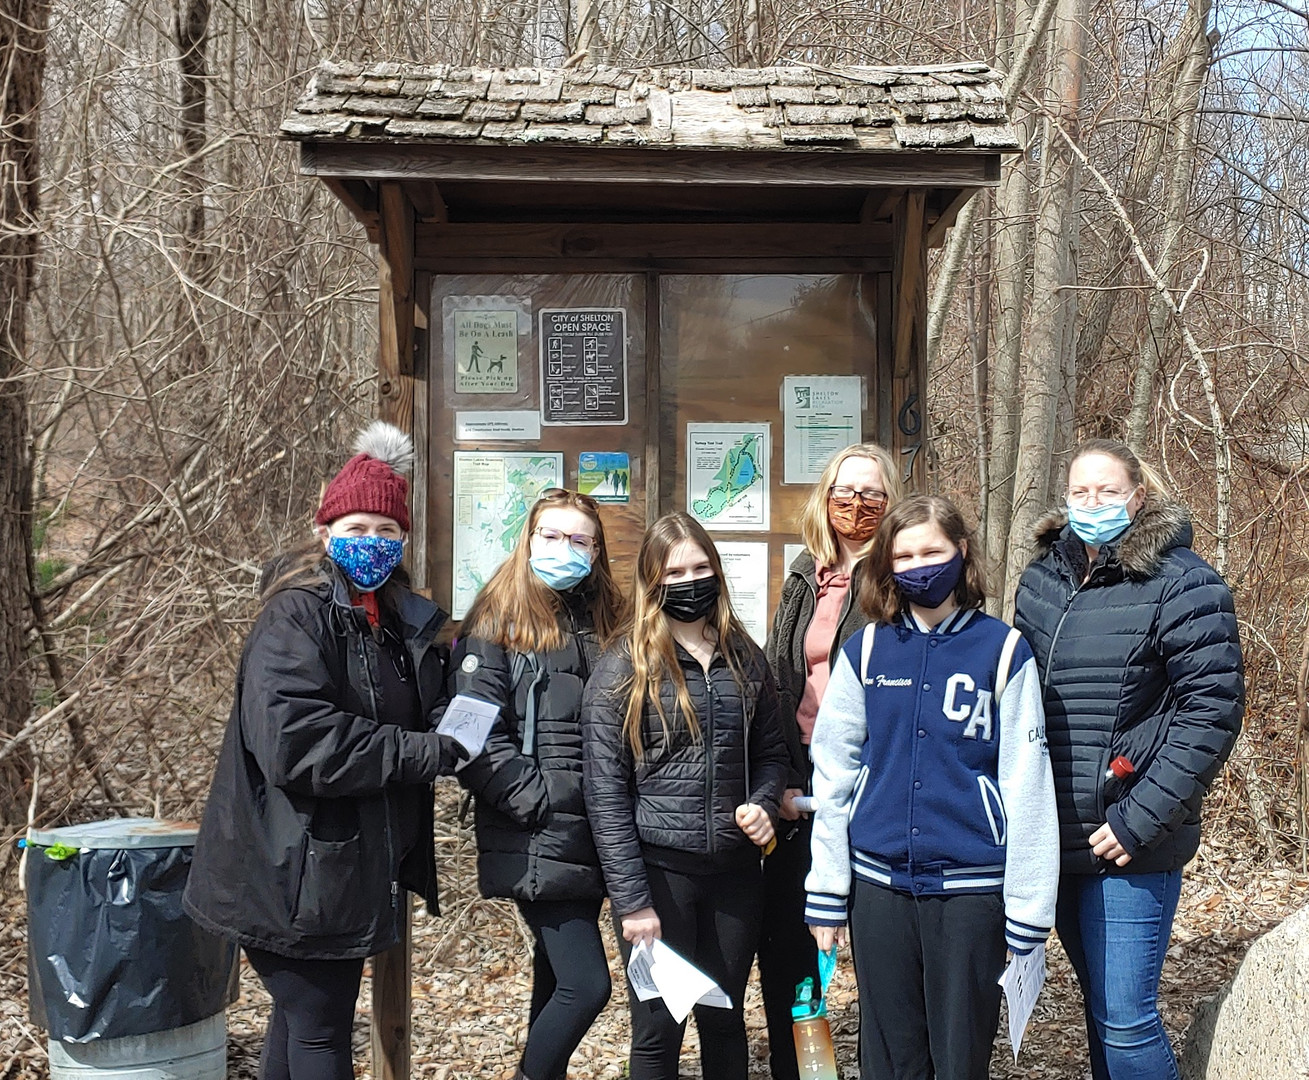 Troop 25G_Letterboxing_032021-1.jpg